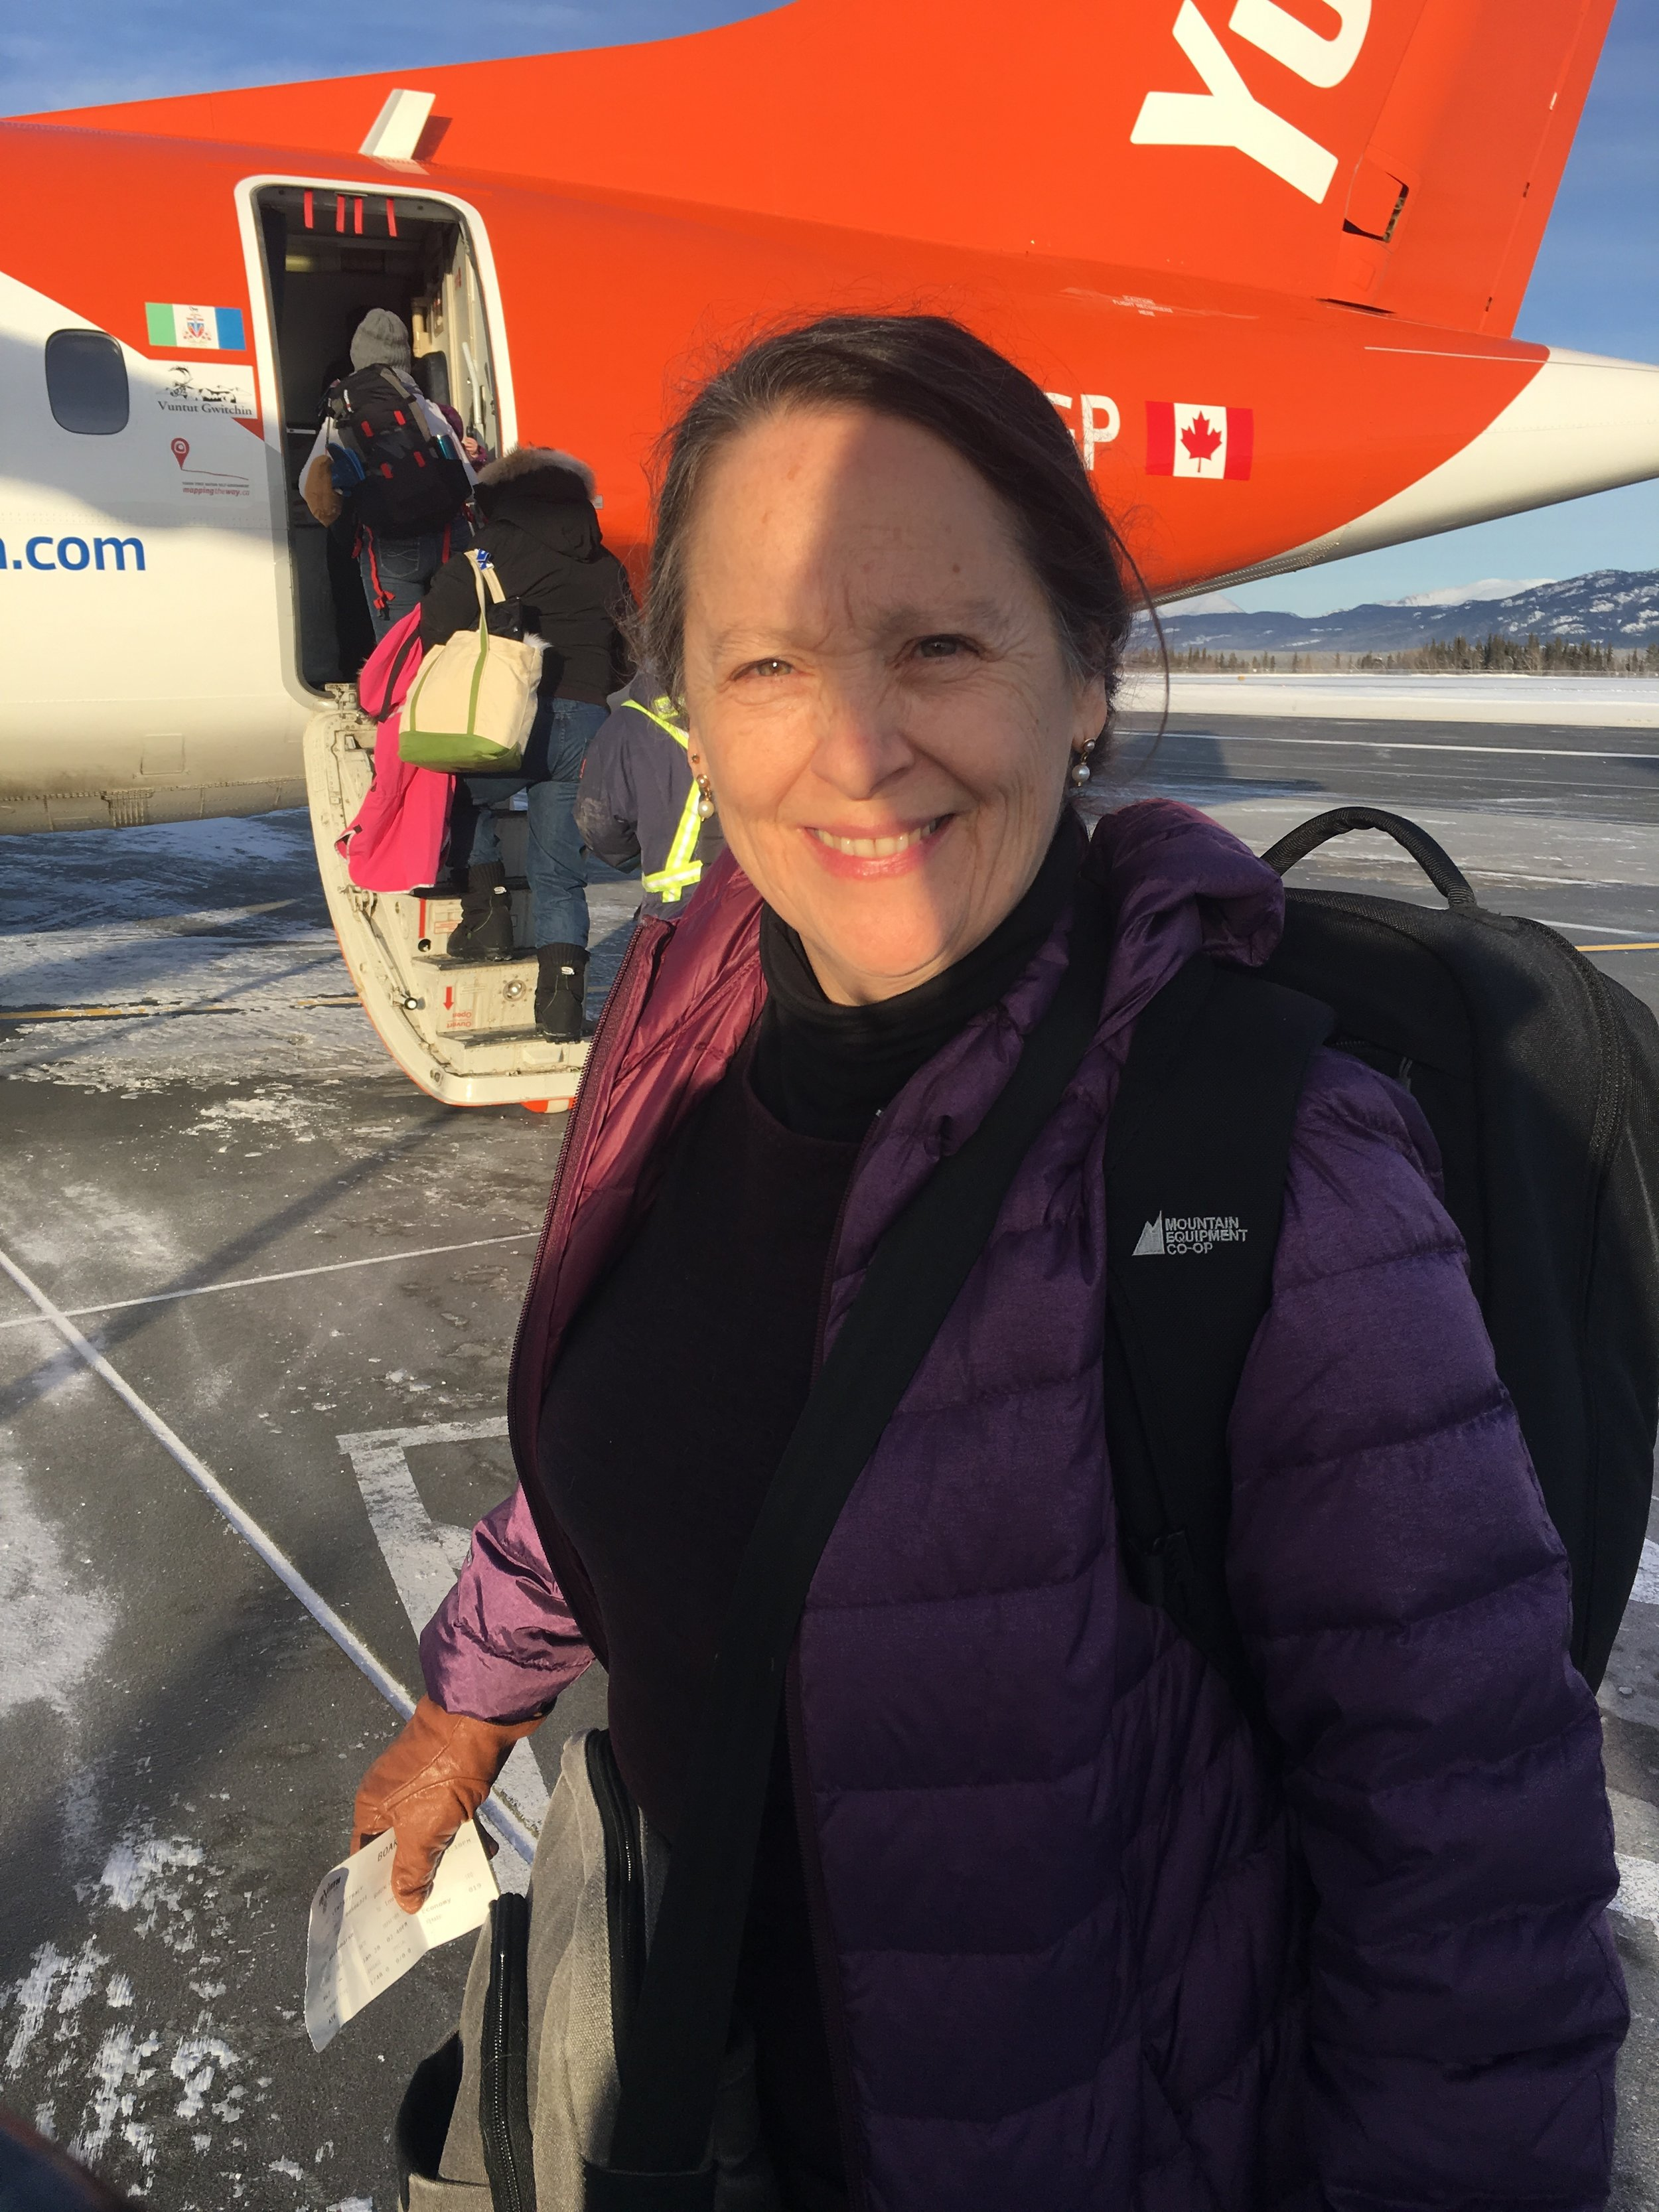 Tracy boarding the plane